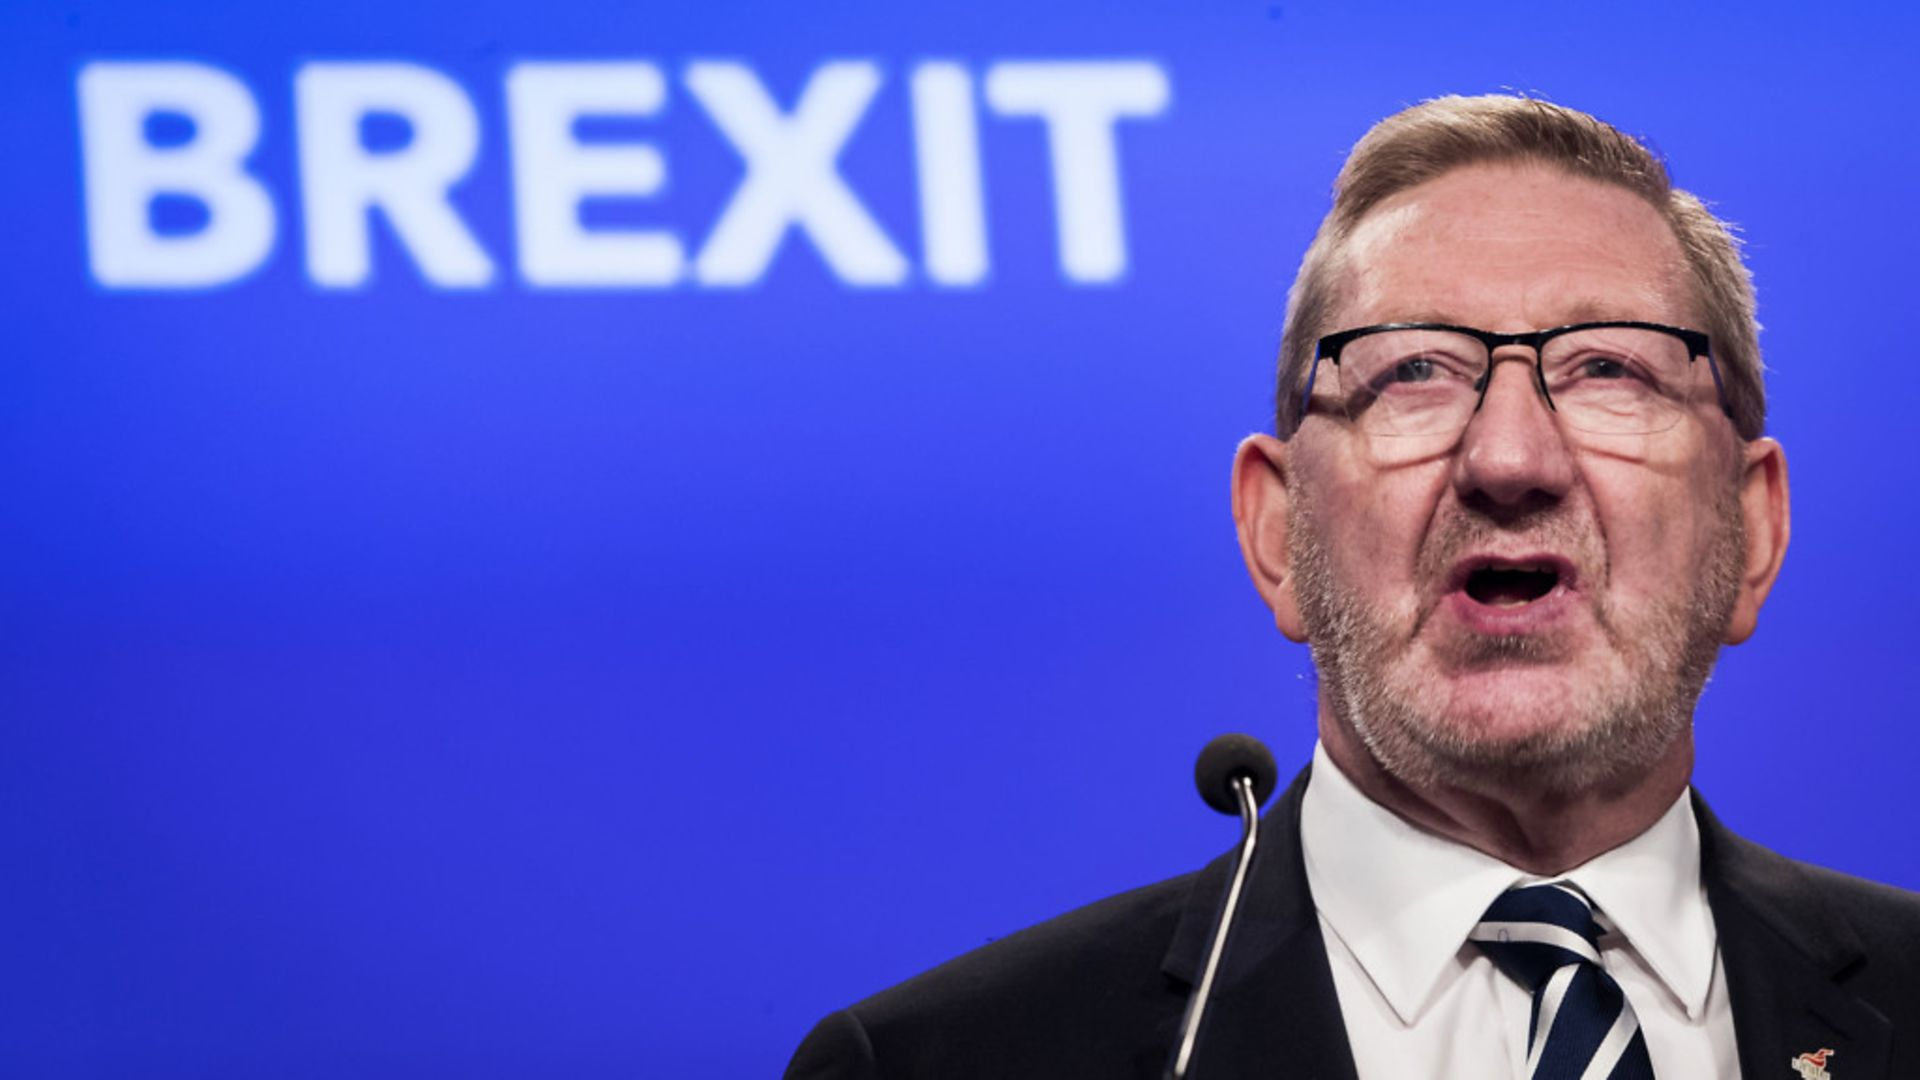 Unite General Secretary Len McCluskey believed a second referendum should not include an option to remain in the EU - Credit: PA Wire/PA Images